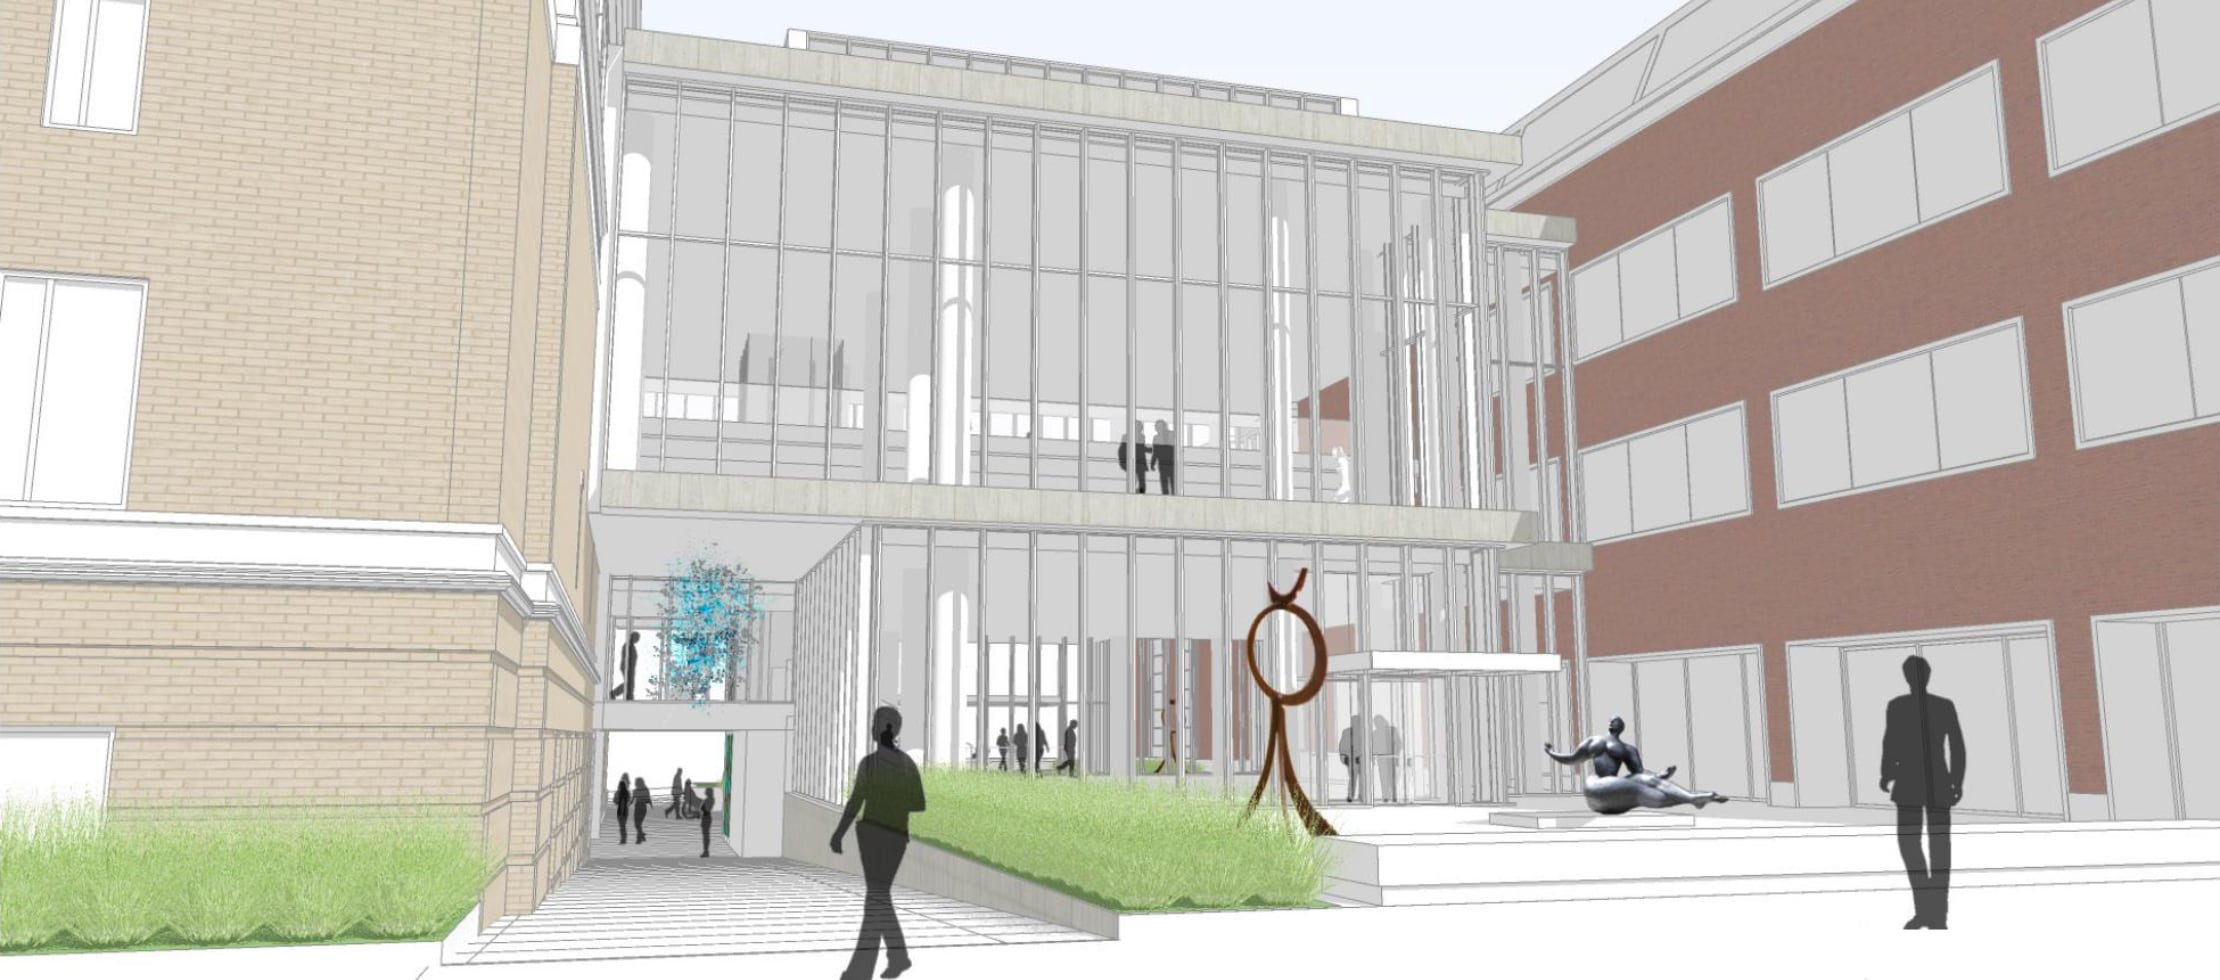 Architectural drawing of the current west plaza design concept